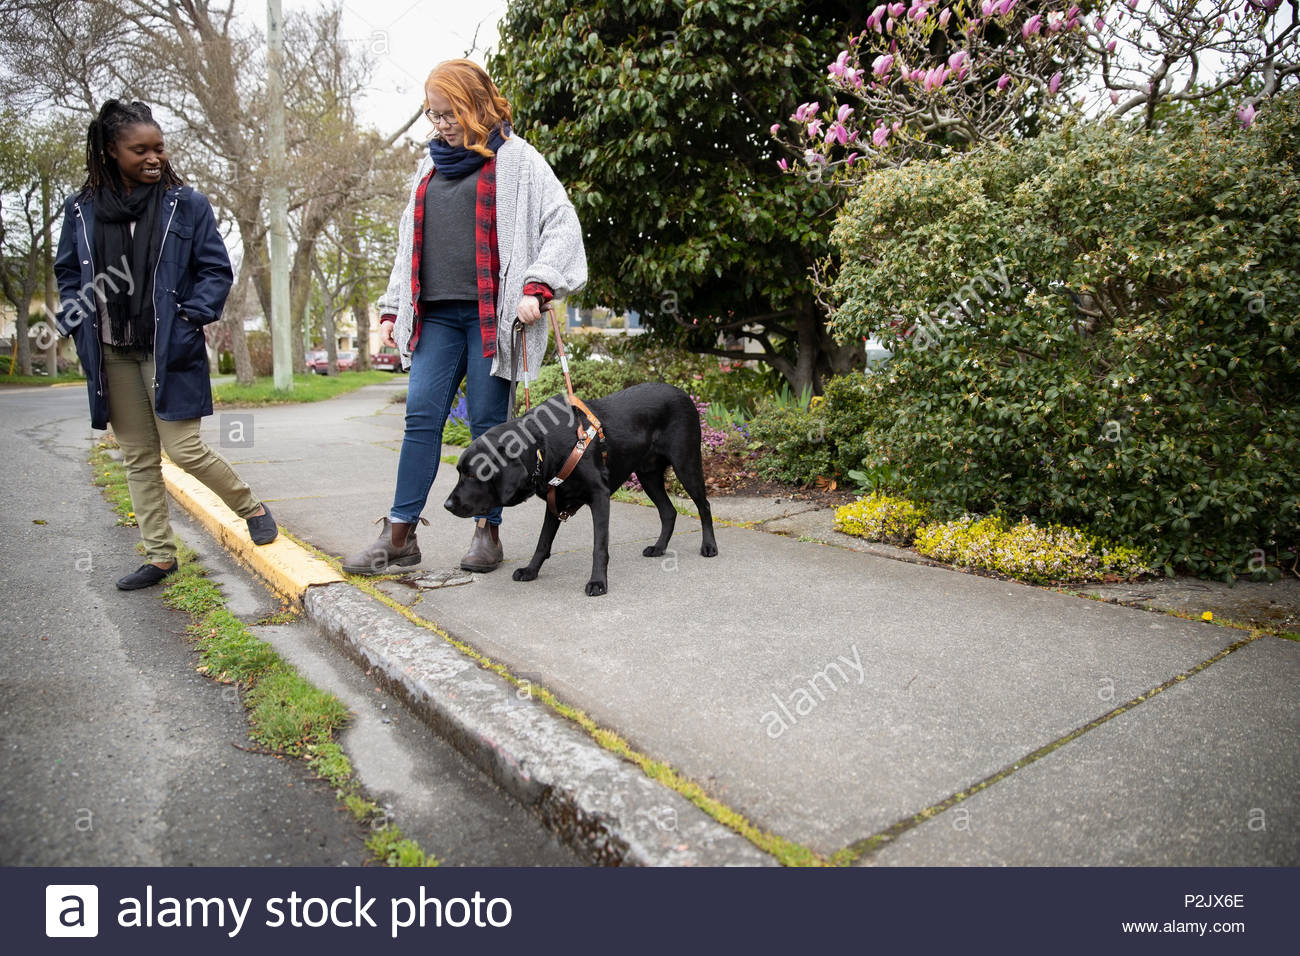 Visually impaired woman with seeing eye dog stepping off curb - Stock Image